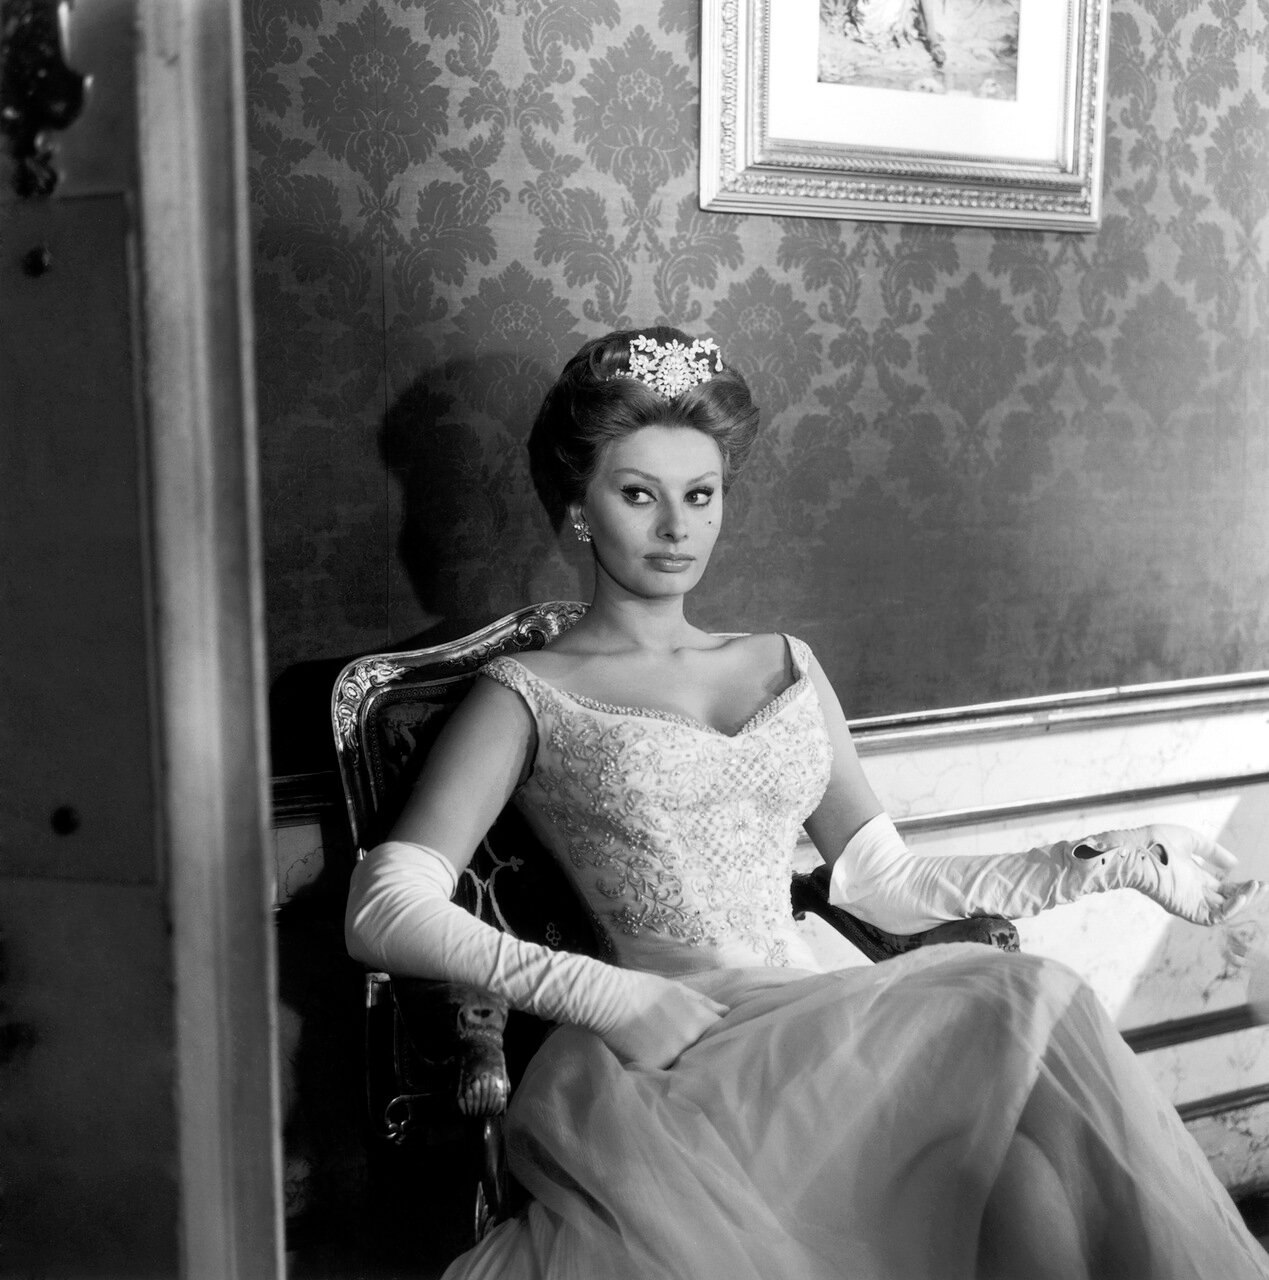 1960: Italian actor Sophia Loren wears a ball gown, long white gloves, and a tiara while sitting in an armchair on the set of director Michael Curtiz's film, 'A Breath of Scandal'.